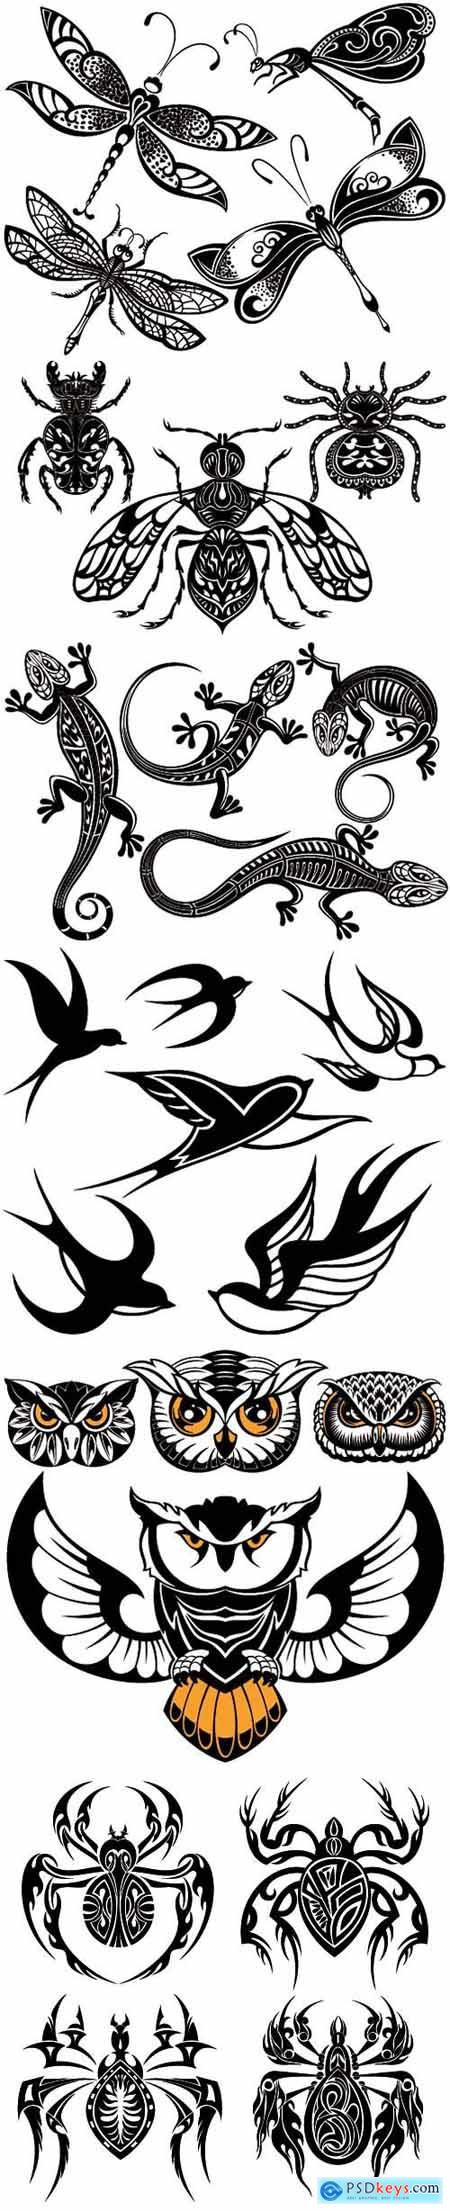 Vector tattoos- insects, birds and animals